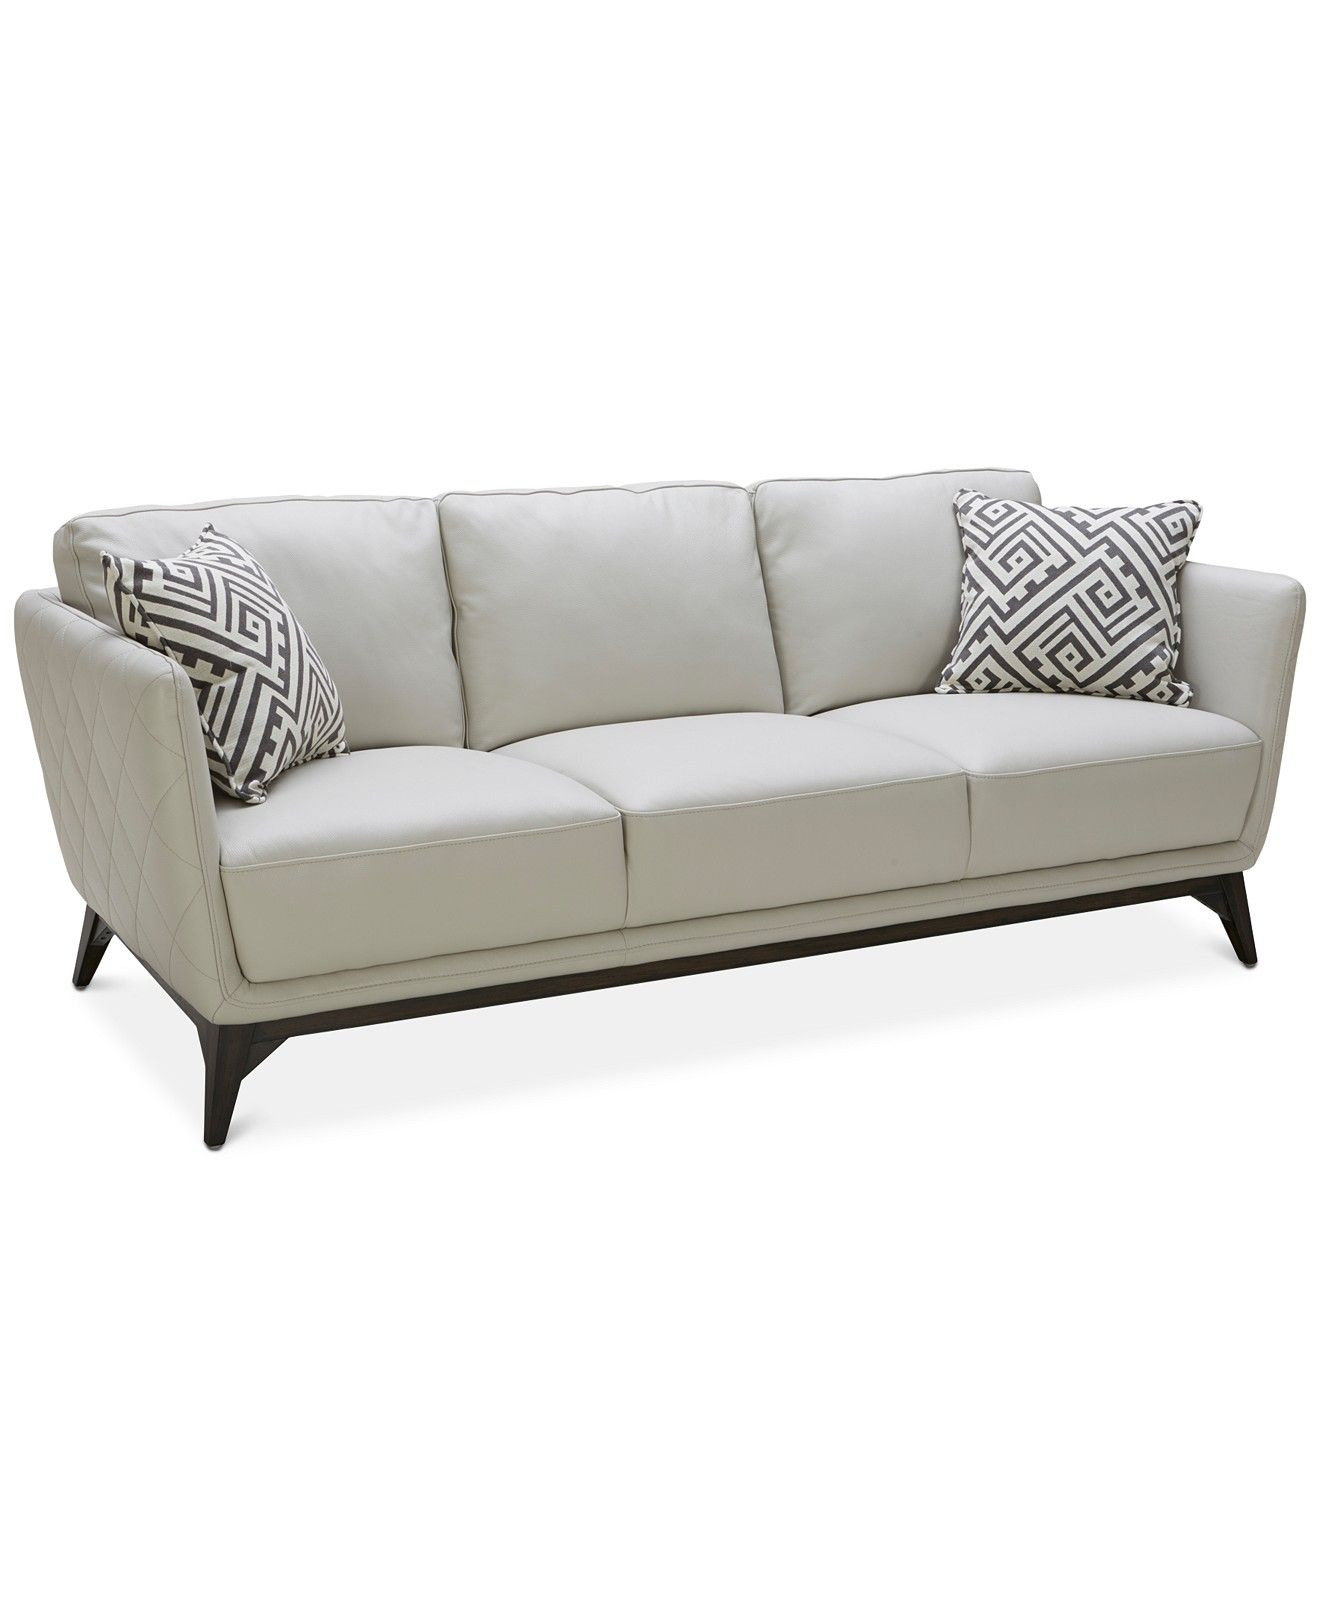 Kourtney Quilted Side Leather Sofa   Couches U0026 Sofas   Furniture   Macyu0027s  $899 ...